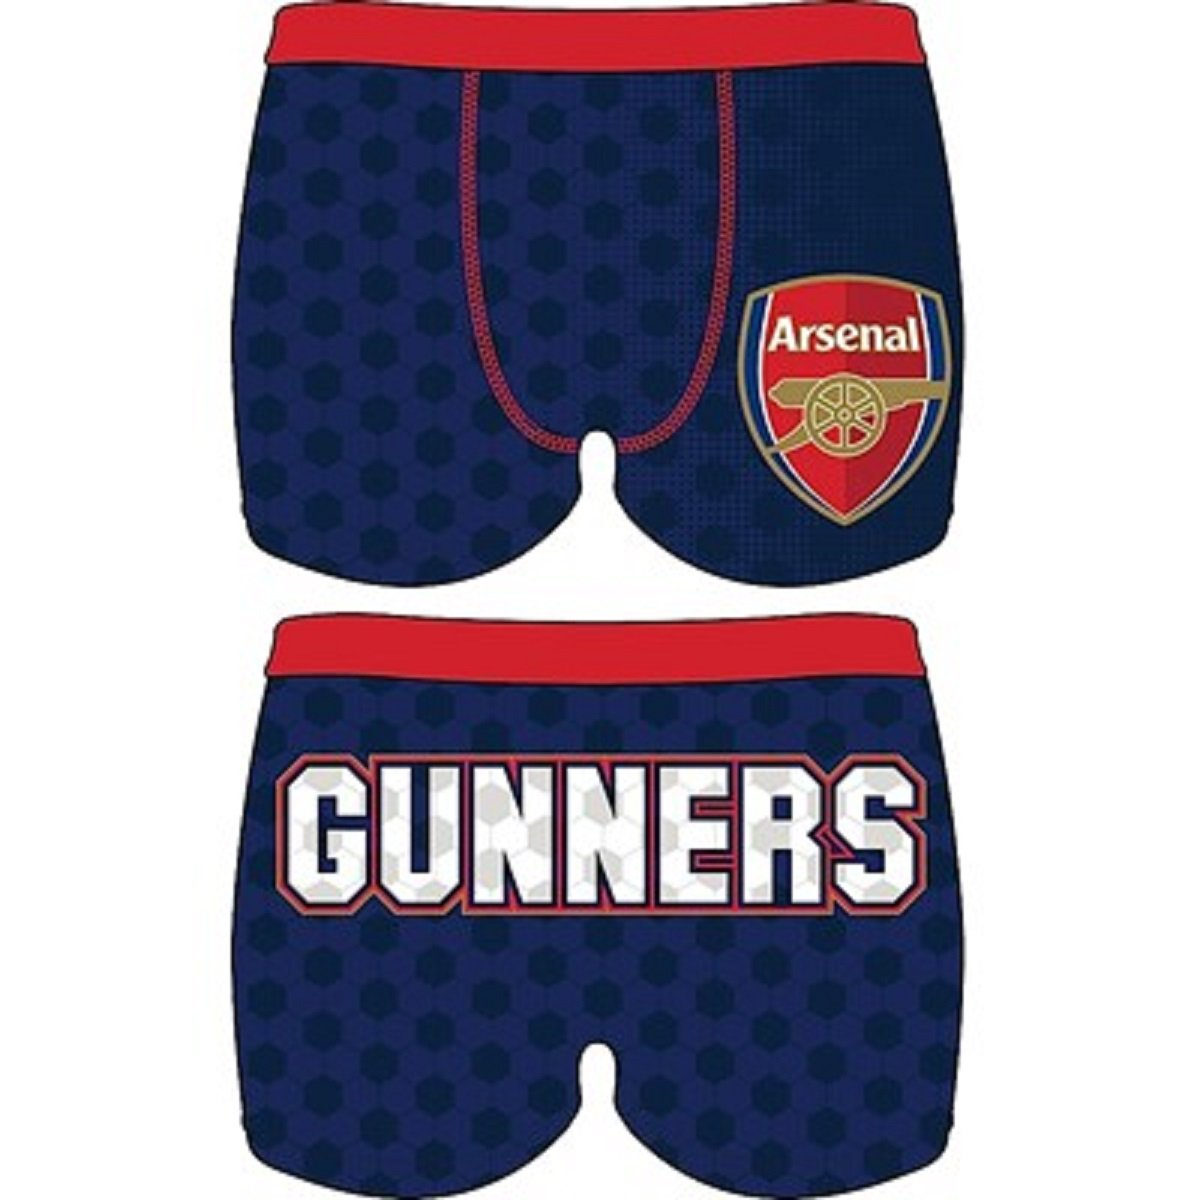 Boys Arsenal FC 1 Pack Trunk Boxer Shorts 7-8 5-6 Size 4-5 9-10 /& 11-12 Years